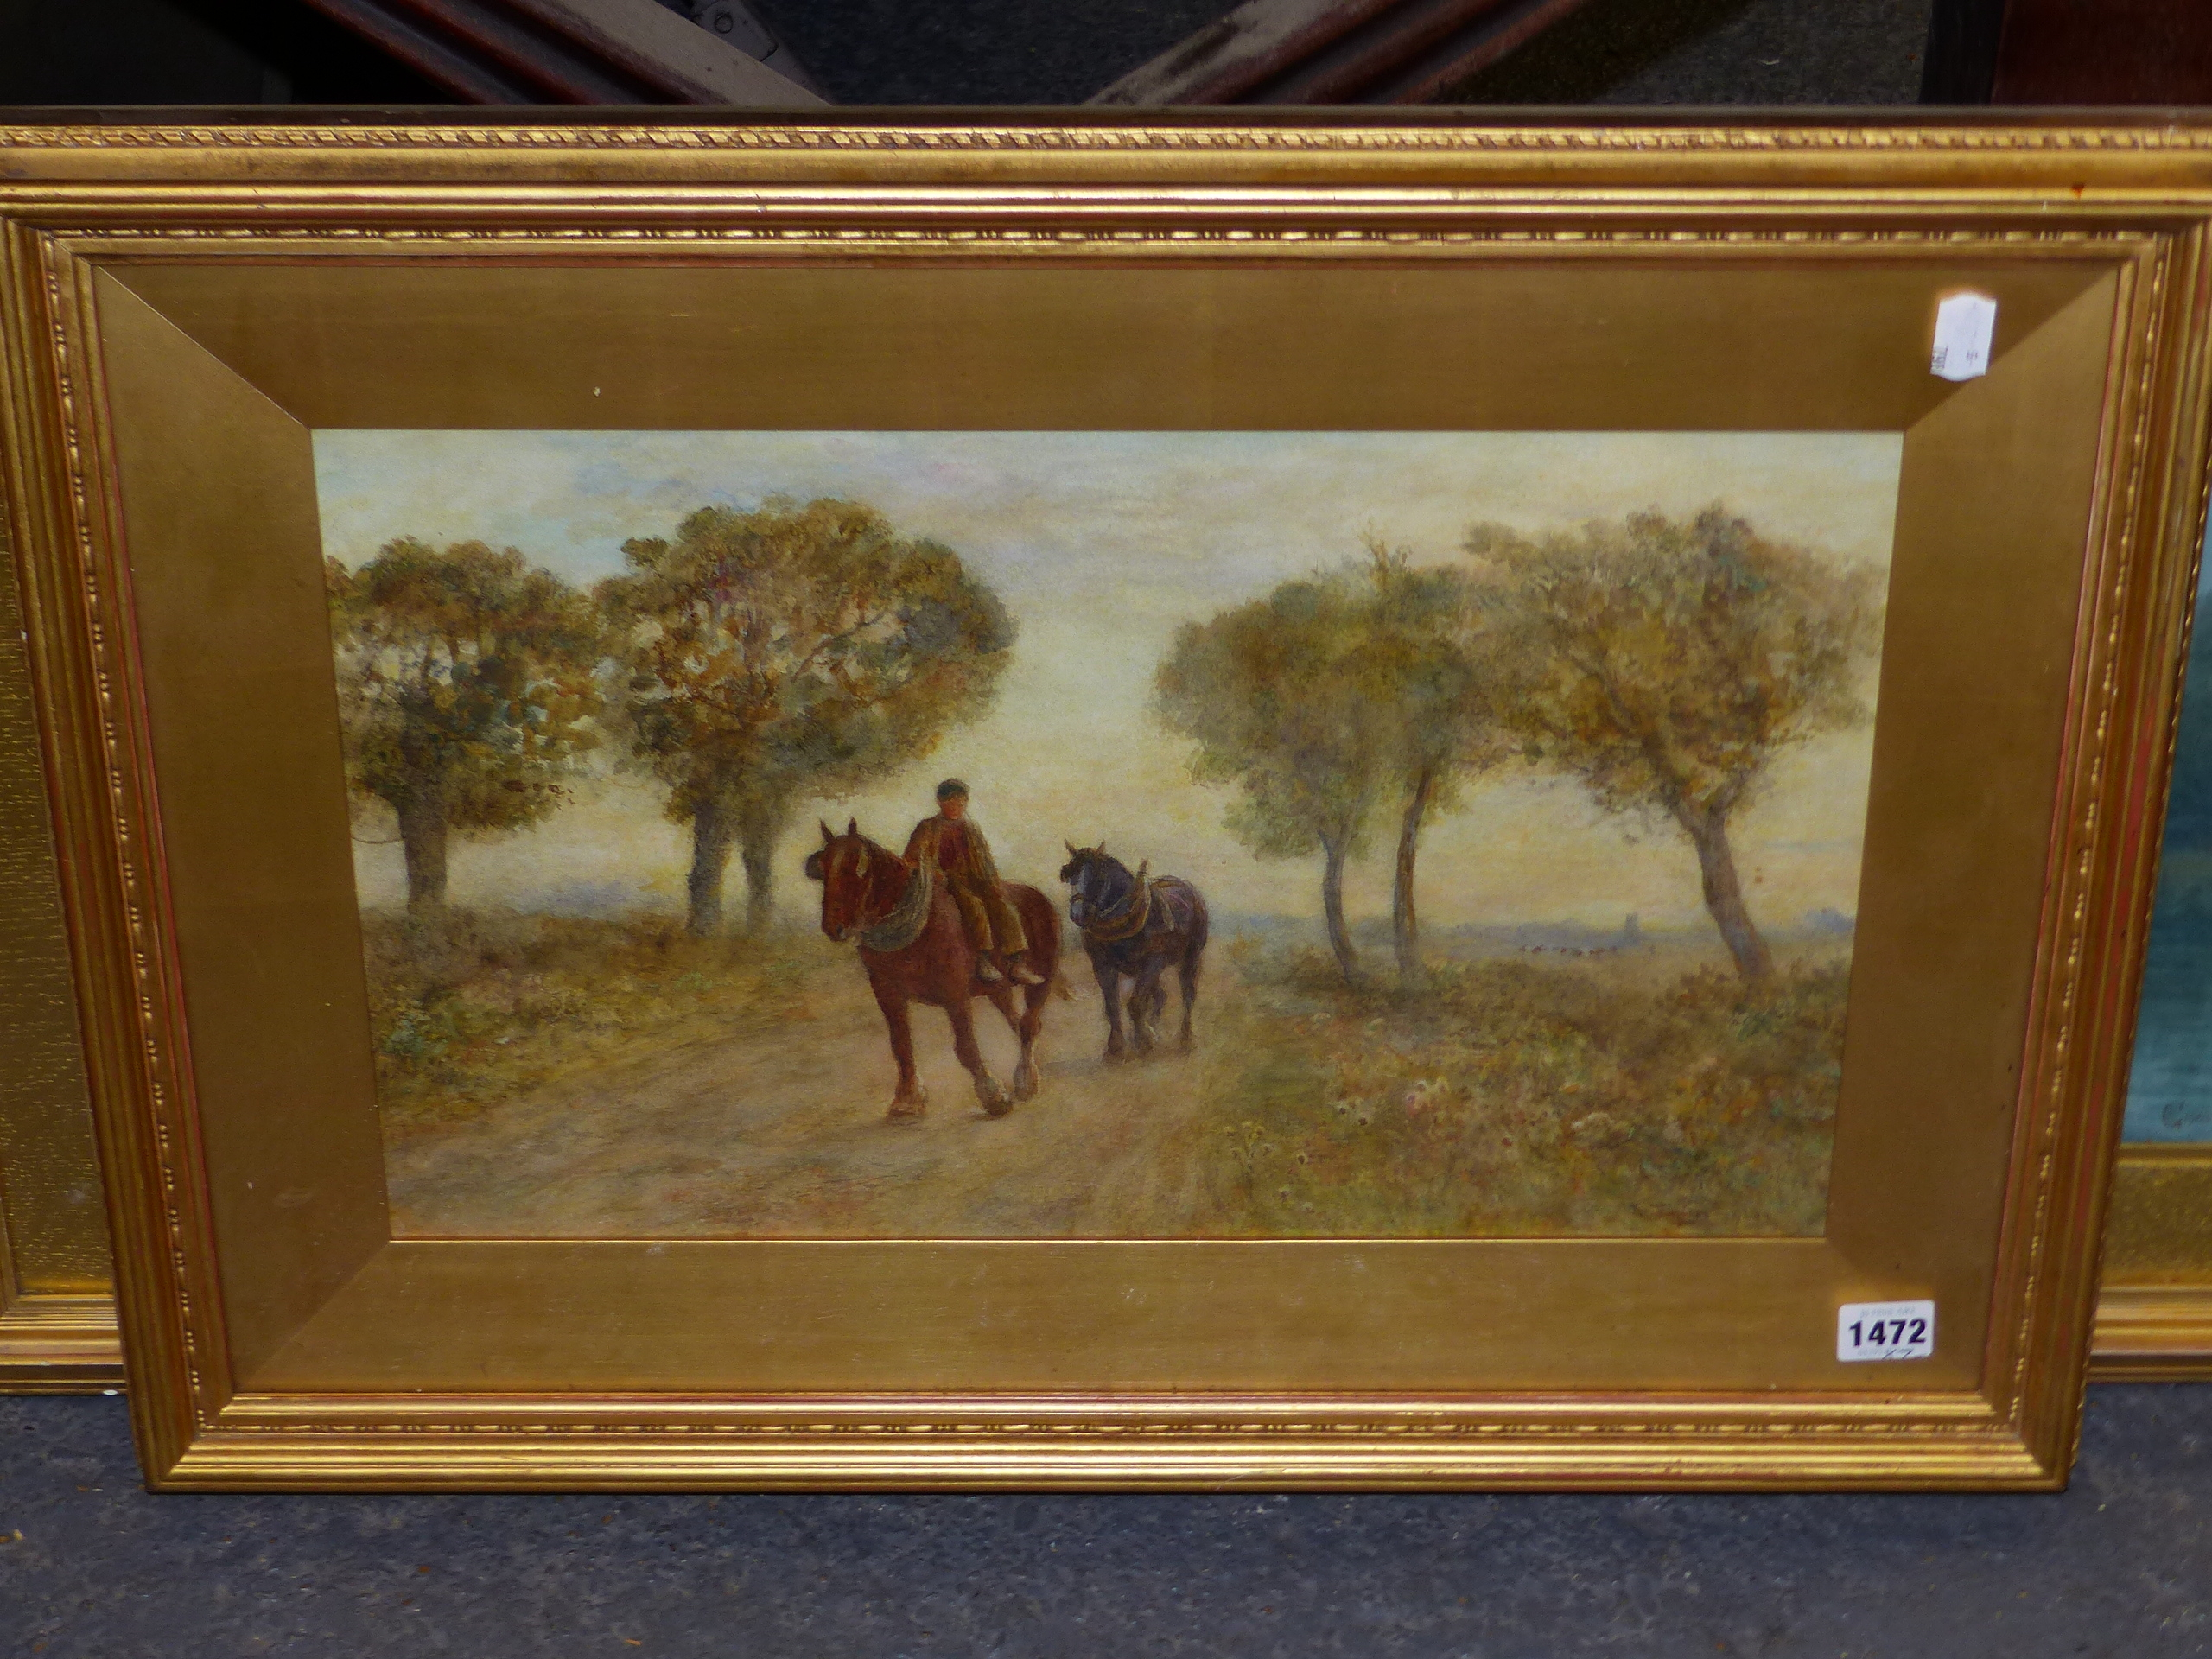 19th/20th C. ENGLISH SCHOOL HOMEWARD BOUND, SIGNED INDISTINCTLY WATERCOLOUR. 28 x 46 cms TOGETHER - Image 3 of 15